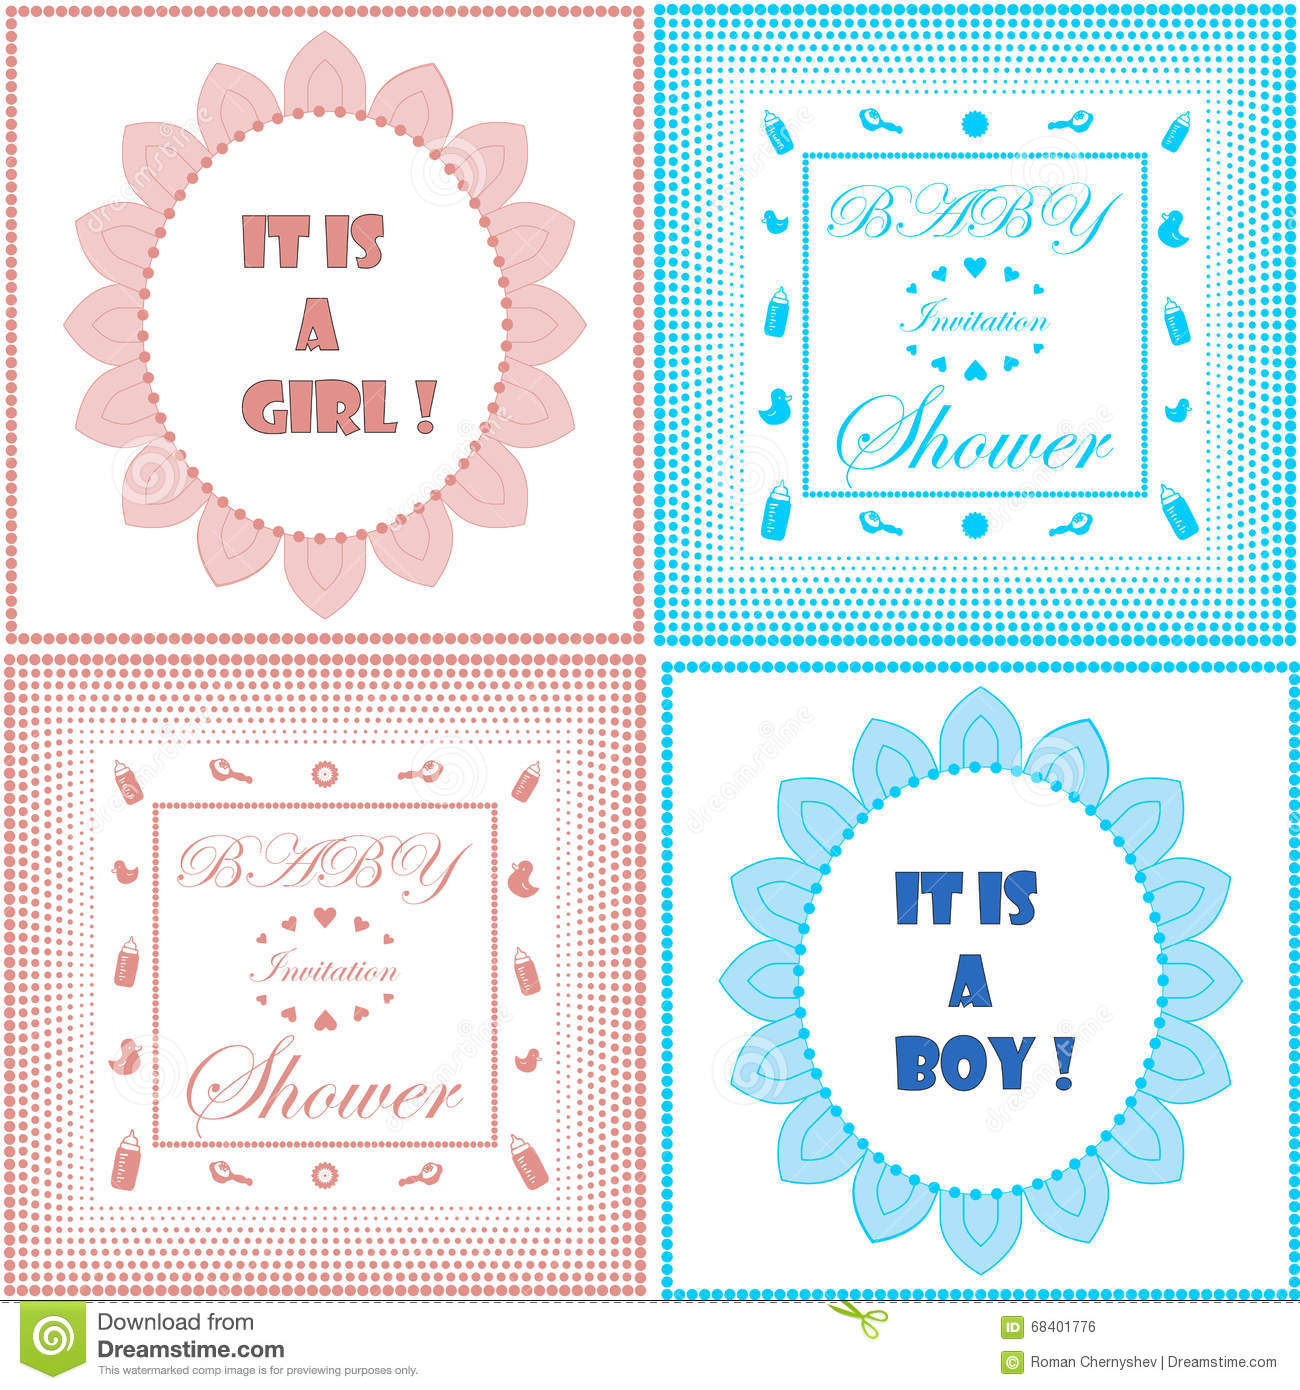 Baby shower invitation card template set boy and girl design download baby shower invitation card template set boy and girl design newborn baby announcement m4hsunfo